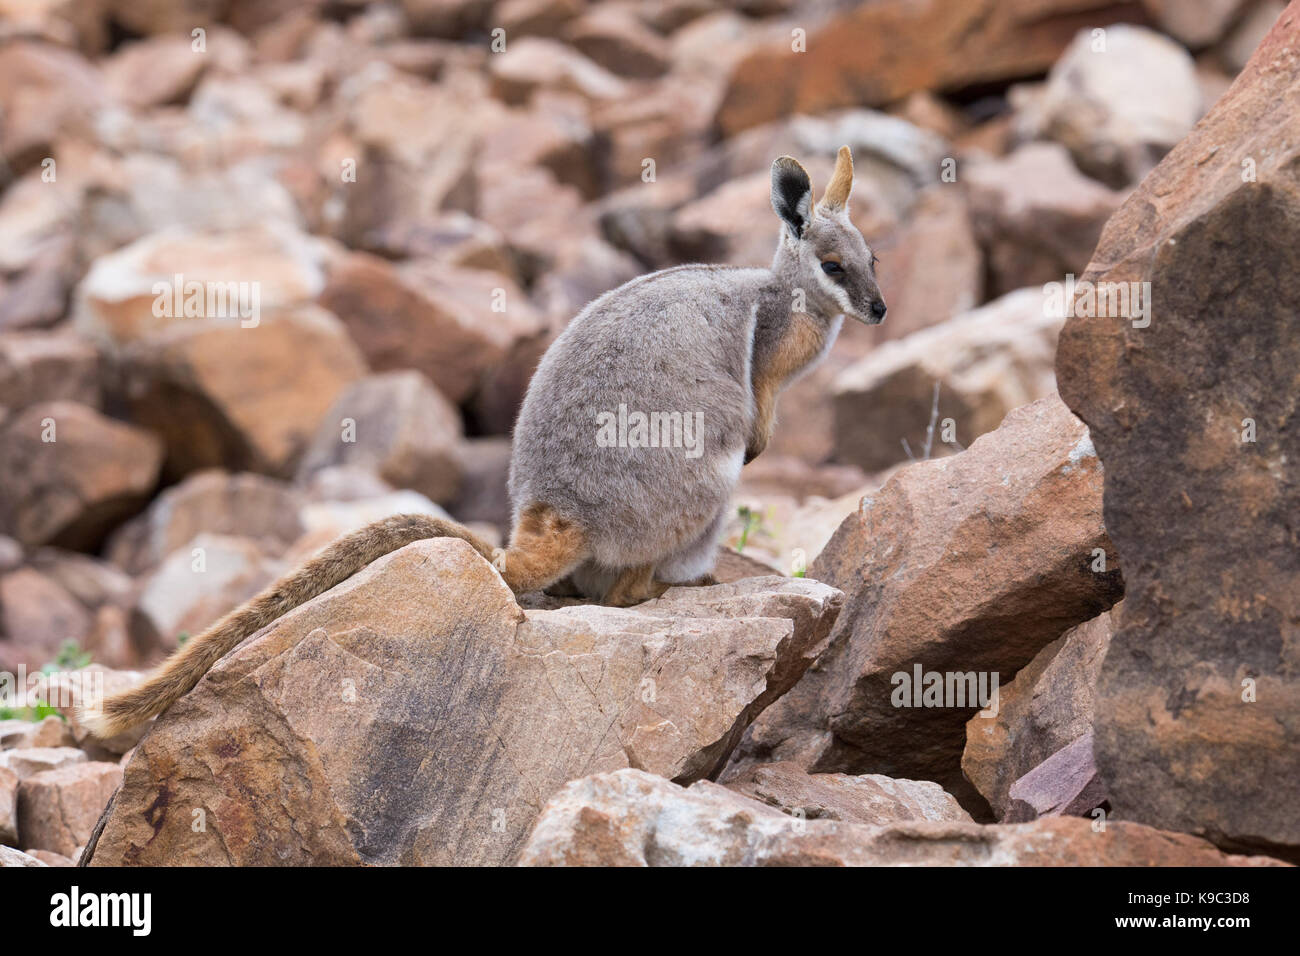 Yellow-footed Rock-wallaby (Petrogale xanthopus) on a rocky slope in the Flinders Ranges, South Australia - Stock Image